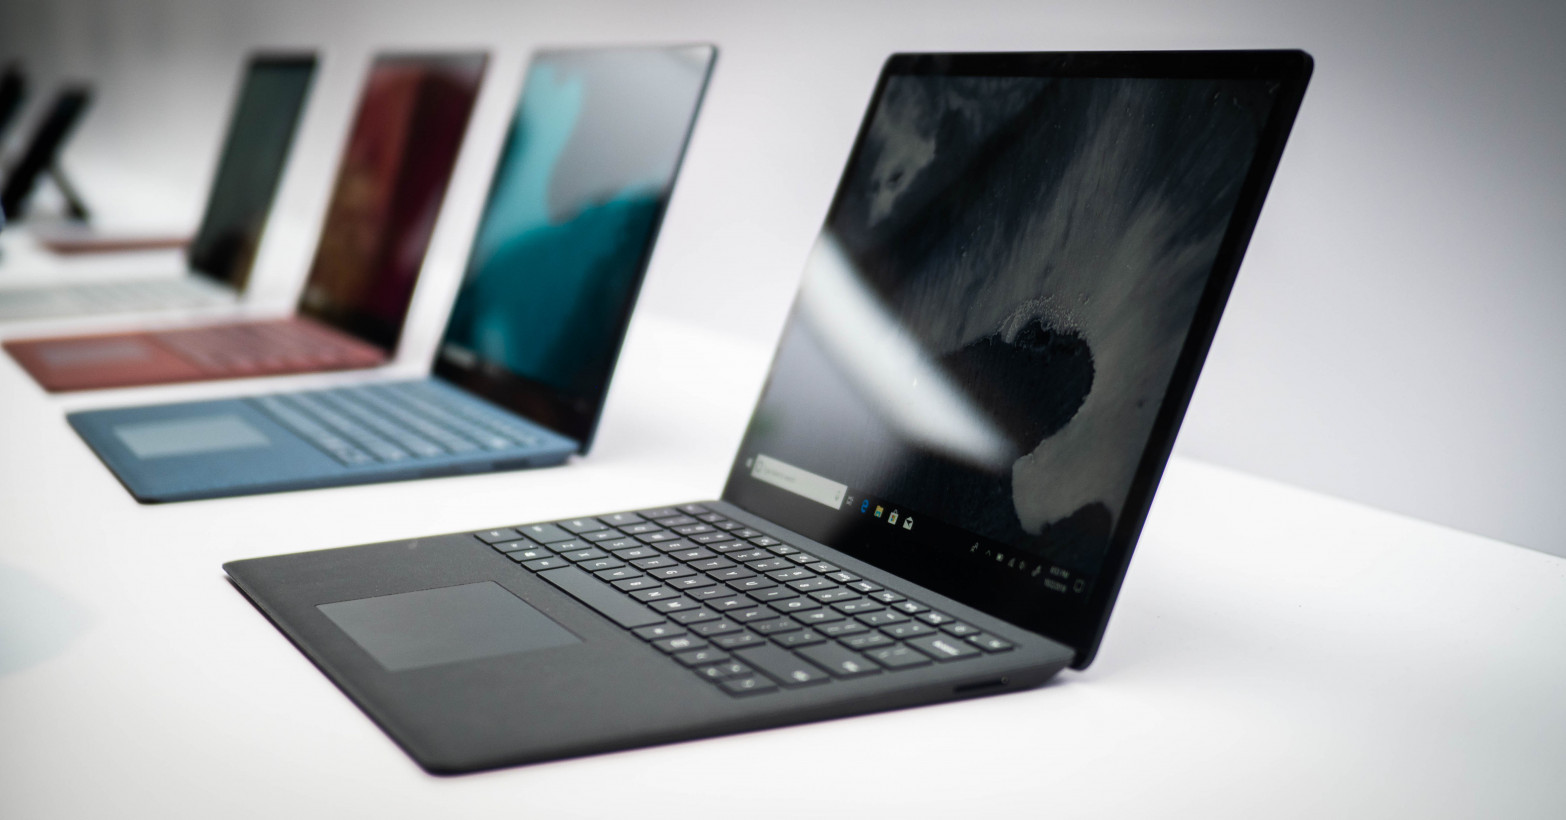 Microsoft's Surface All Access plan lets you own a PC for $25 a month